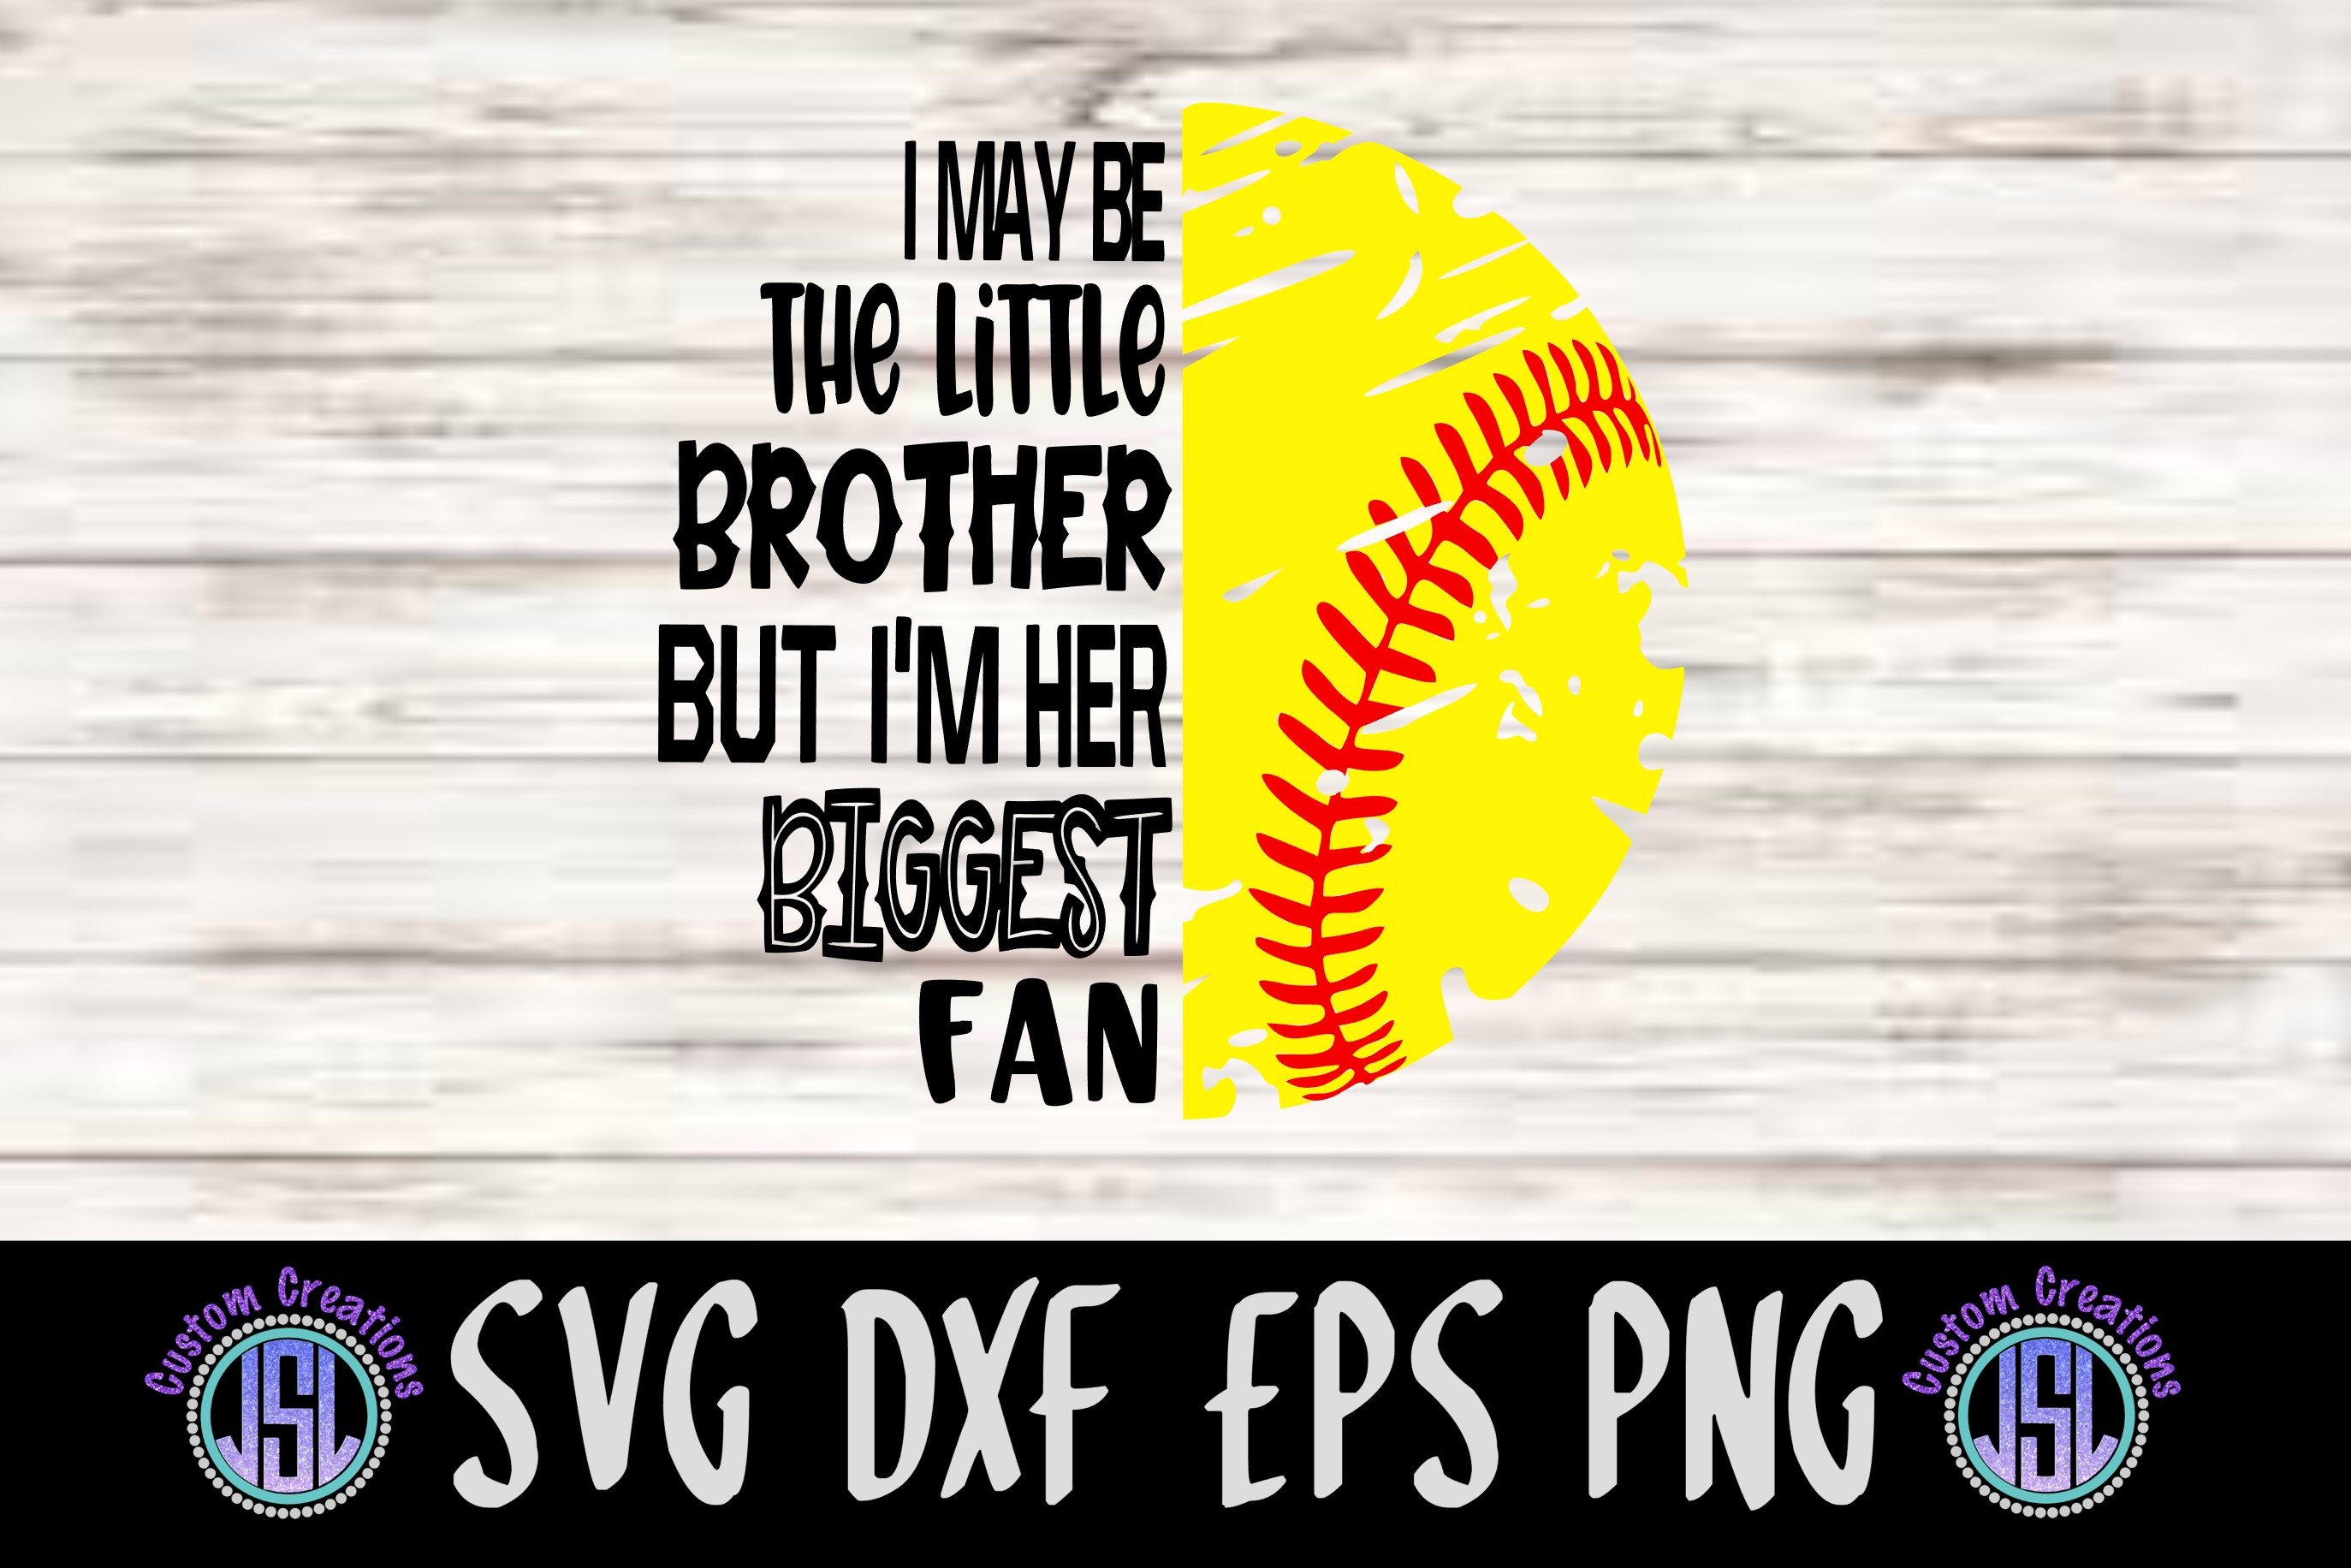 Biggest Fan Little Brother & Sister Softball|SVG DXF EPS PNG example image 2